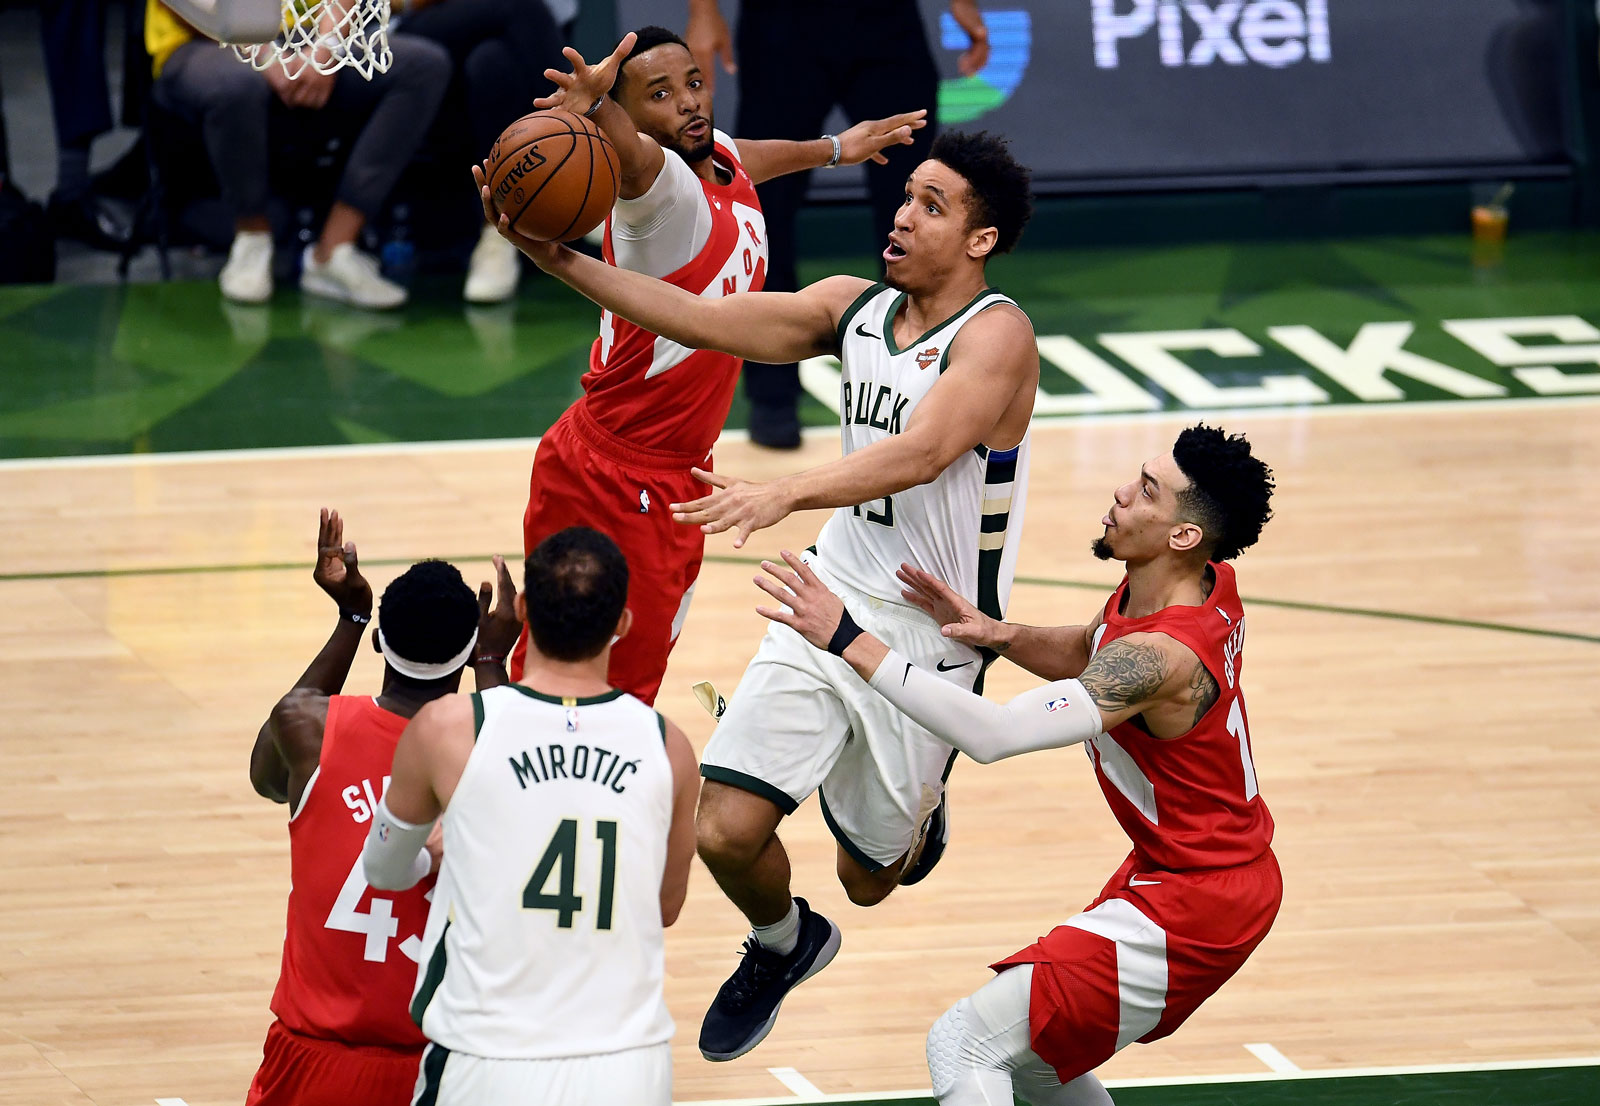 Malcolm Brogdon #13 of the Milwaukee Bucks attempts a shot while being guarded by Pascal Siakam #43 and Danny Green #14 of the Toronto Raptors in the second quarter during Game Five of the Eastern Conference Finals of the 2019 NBA Playoffs at the Fiserv Forum on May 23, 2019 in Milwaukee, Wisconsin.